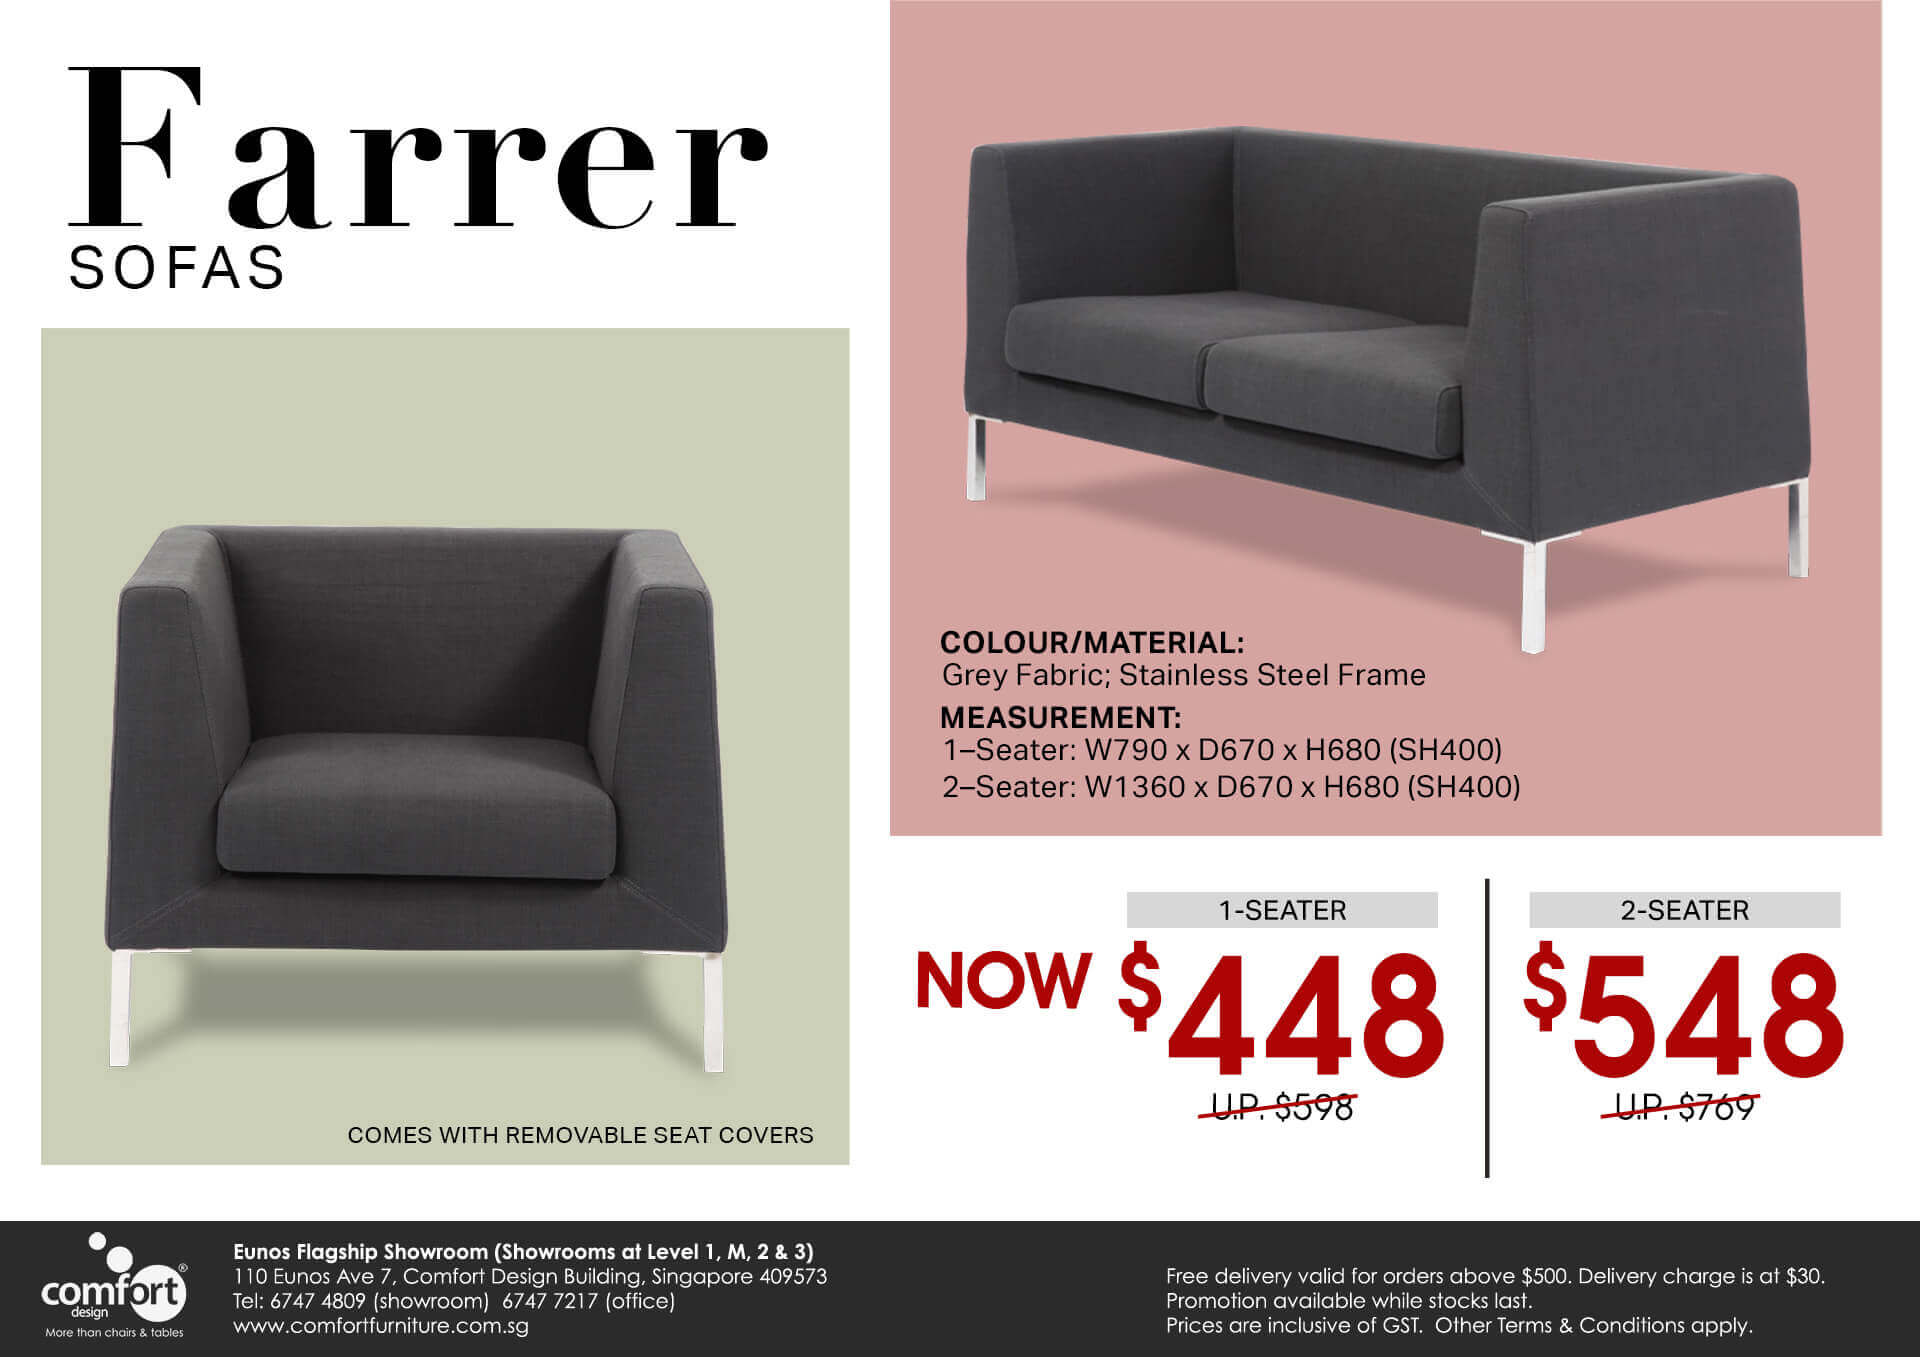 Farrer 1–Seater Sofa | Comfort Design - The Chair & Table People